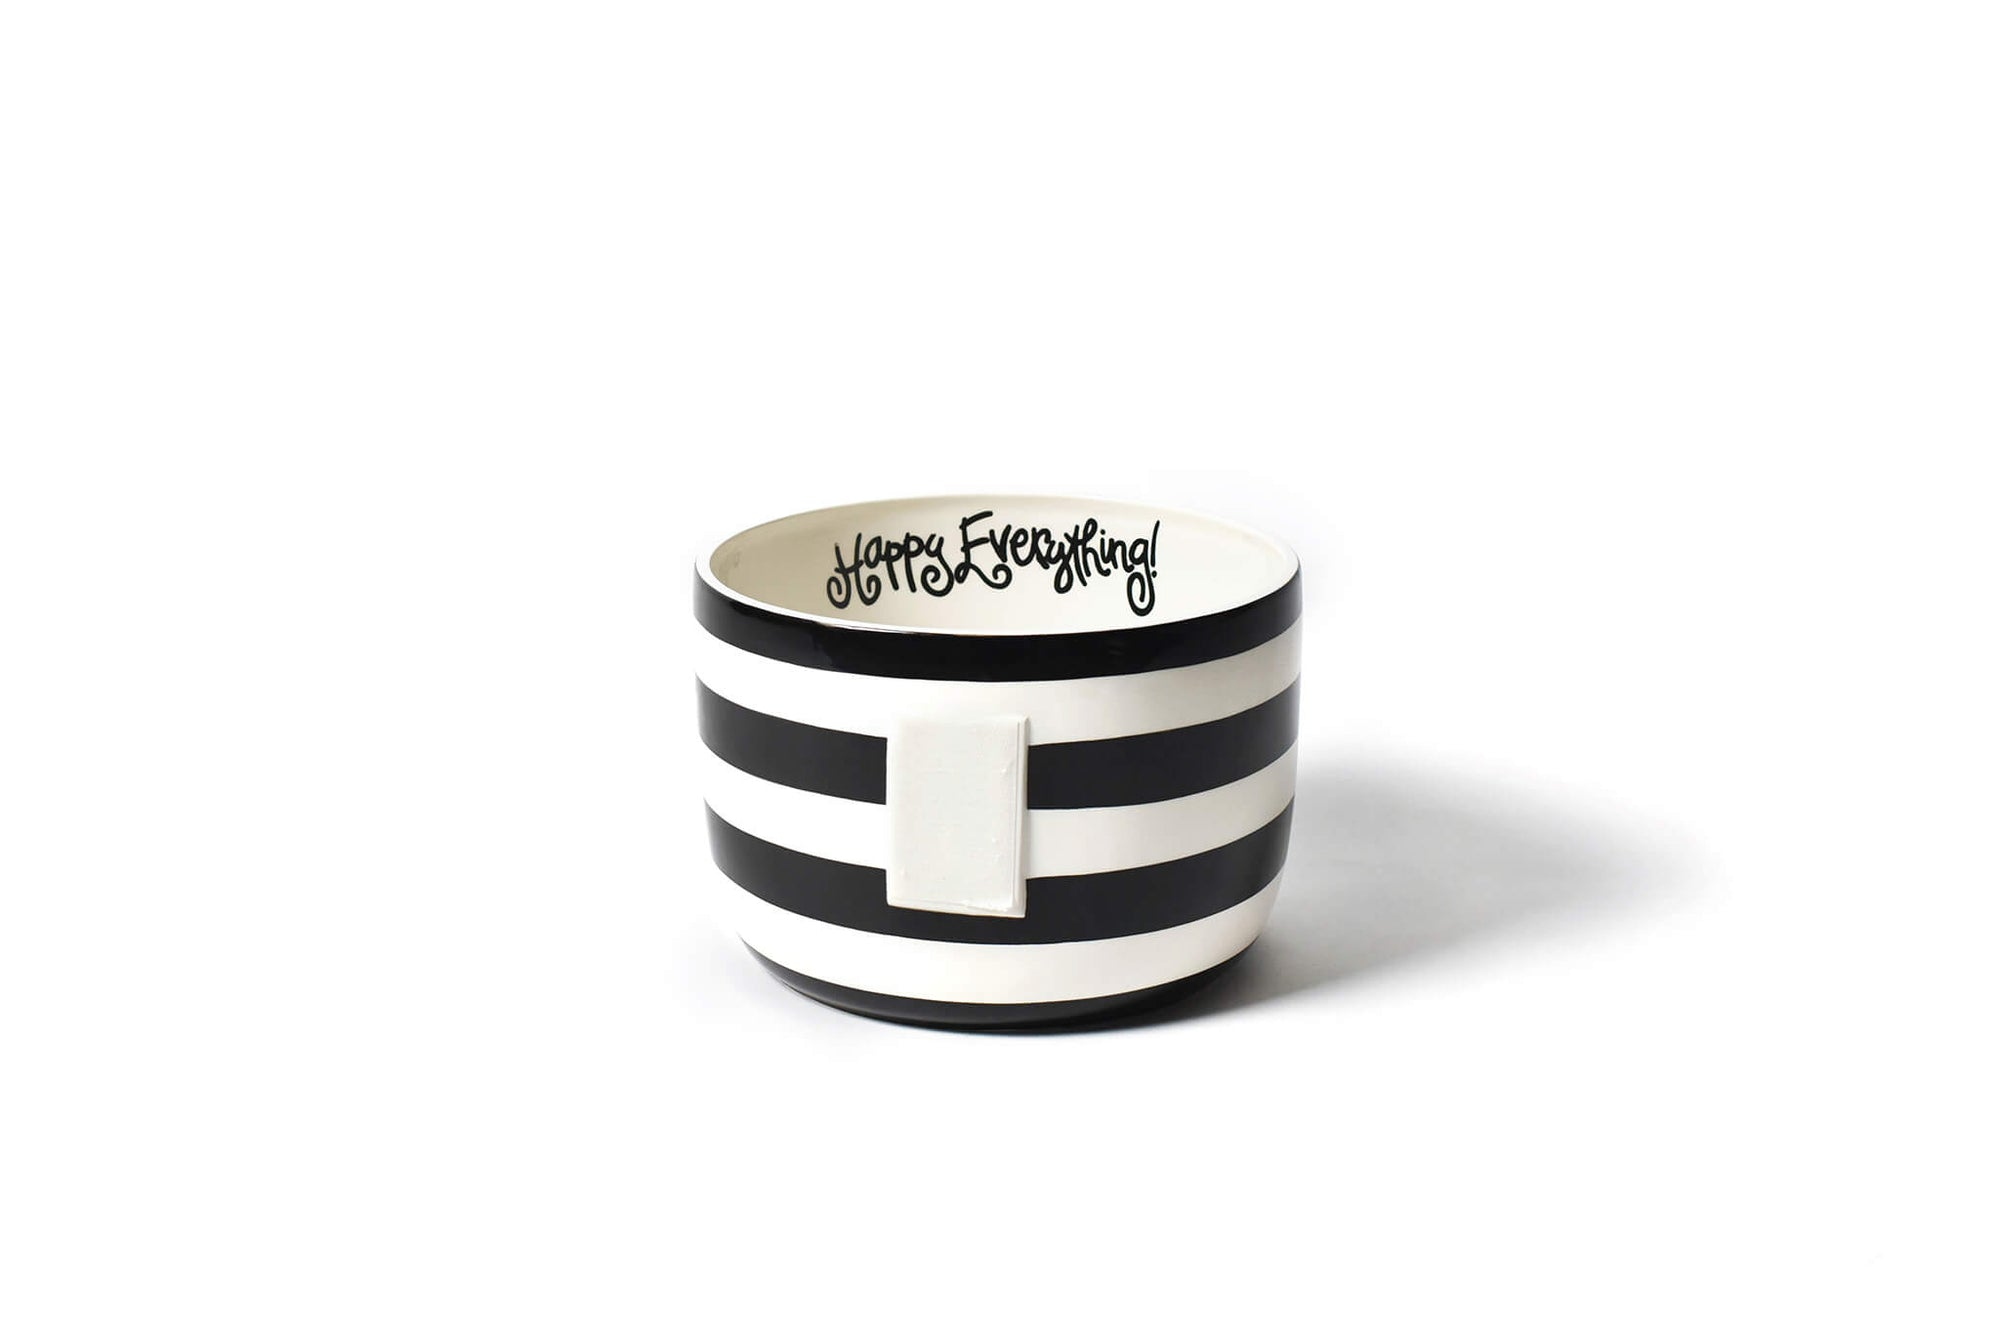 Black Stripe Big Happy Everything! Bowl